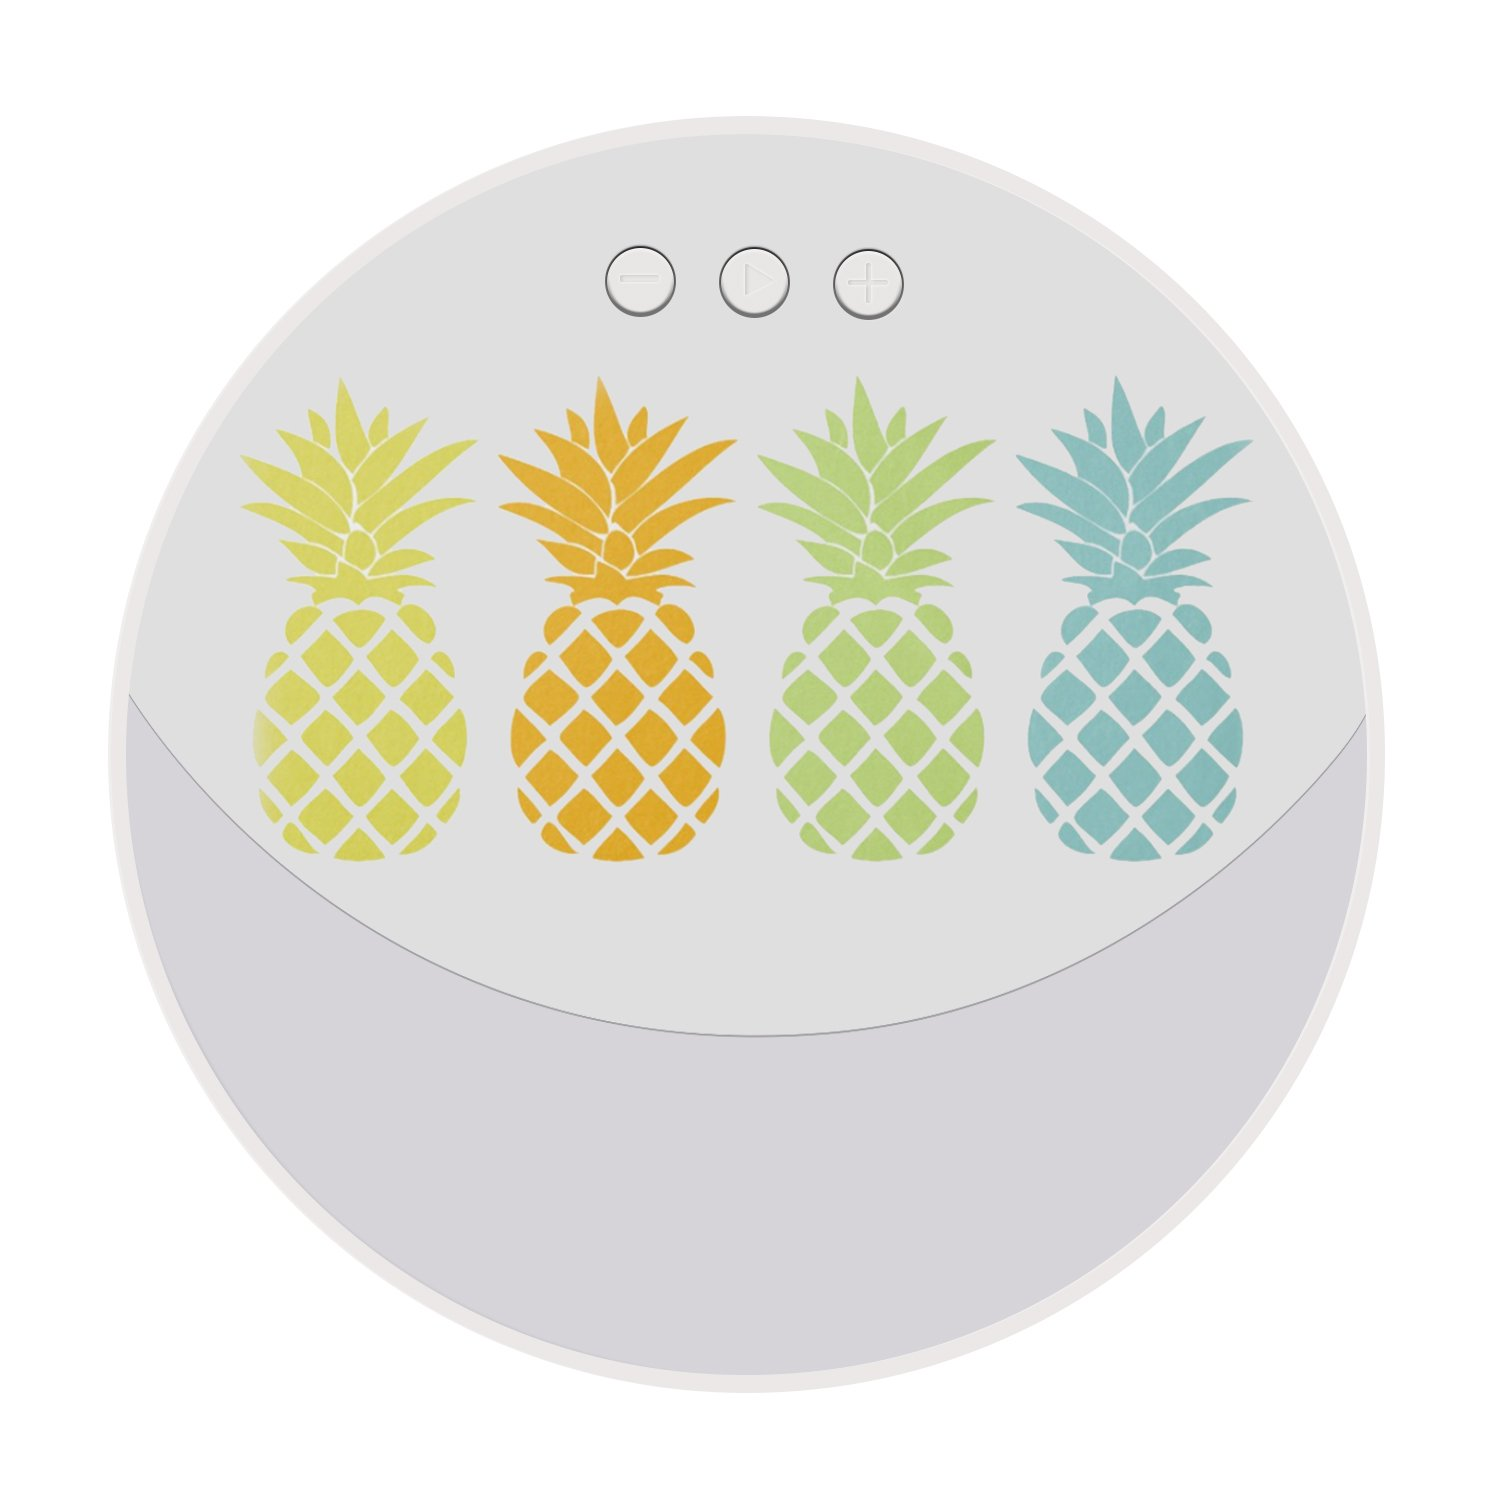 Wireless Bluetooth Speaker, Ultra Portable Full-Body Stereo Speaker Bluetooth 4.2 with Powerful Volume for iPhone /iPod/iPad/Phones and Tablets - Colorful Pineapples